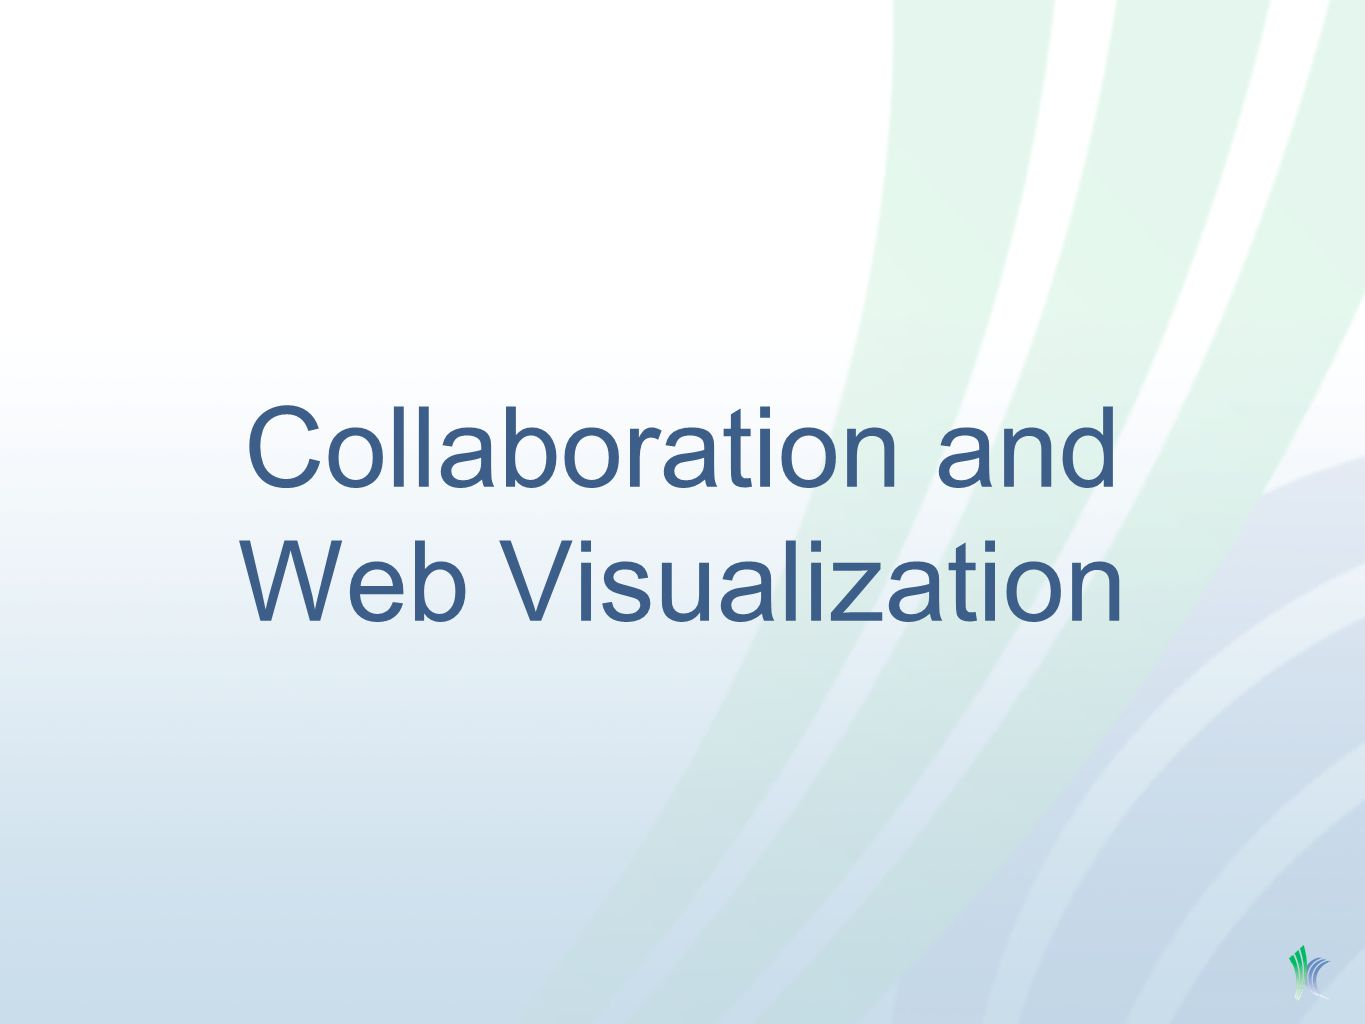 Collaboration and Web Visualization